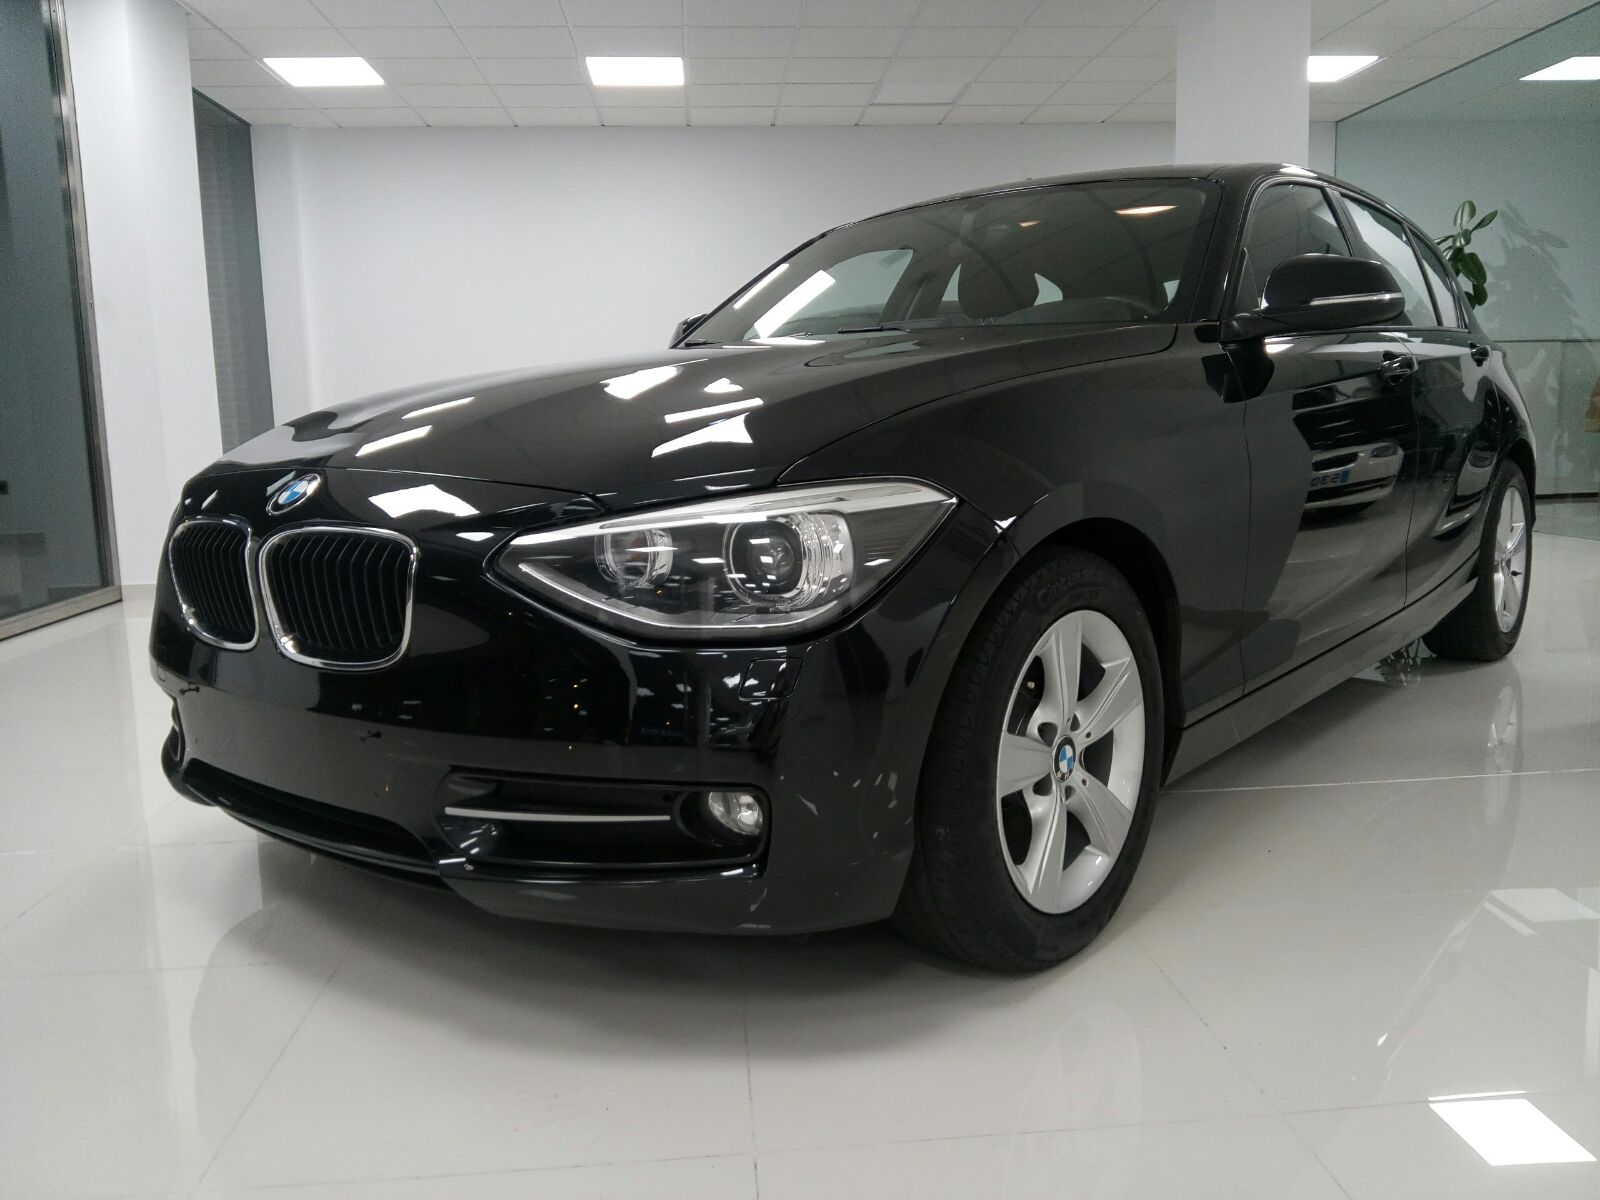 07 bmw serie 1 116d f20 efficientdynamics edition 2013 cofermotor turbo nuevo turbo reparado. Black Bedroom Furniture Sets. Home Design Ideas